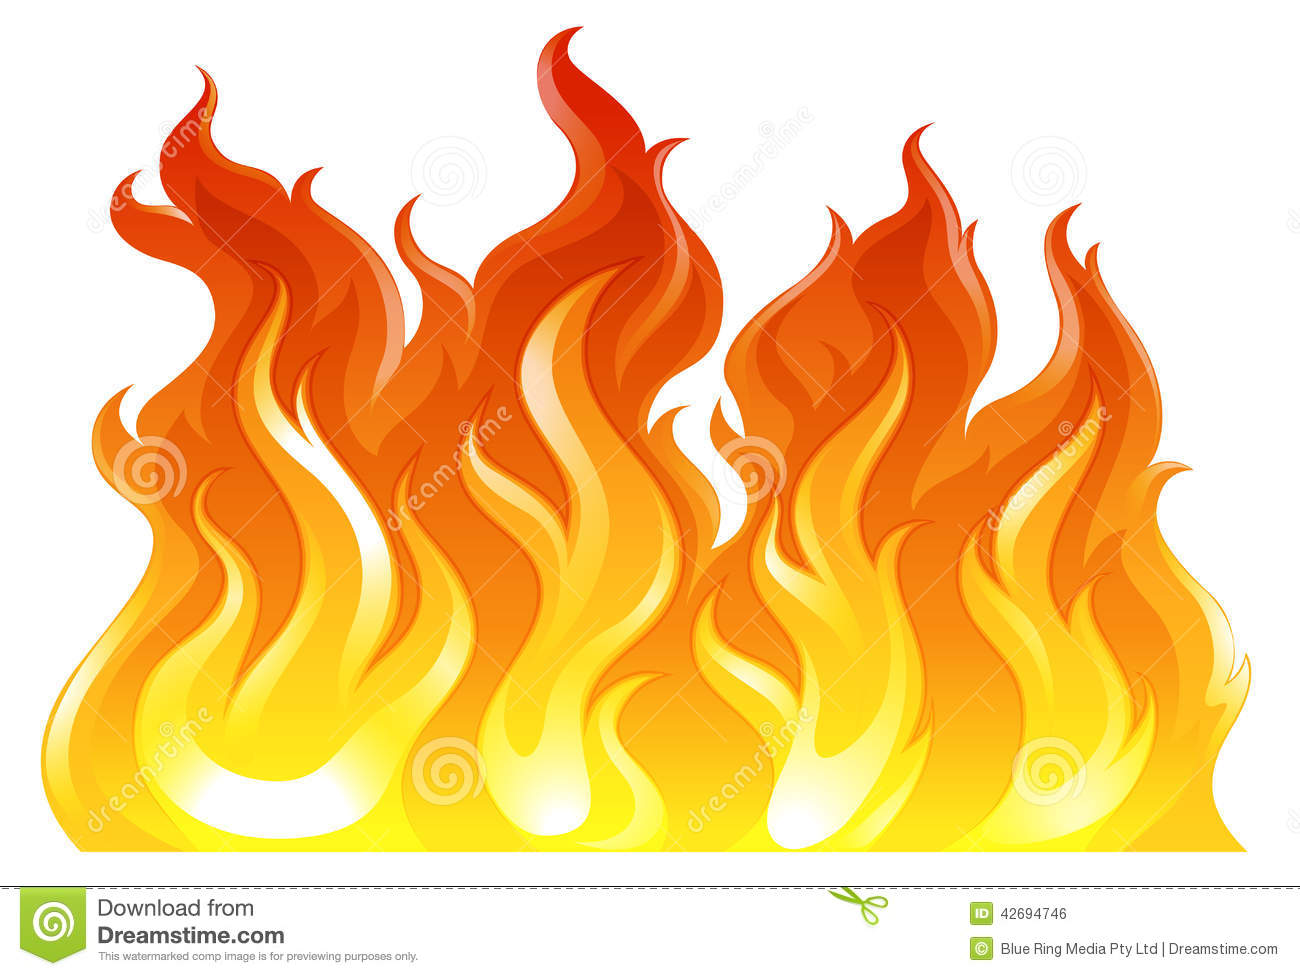 A fire stock vector. Illustration of process, fire, illustration.